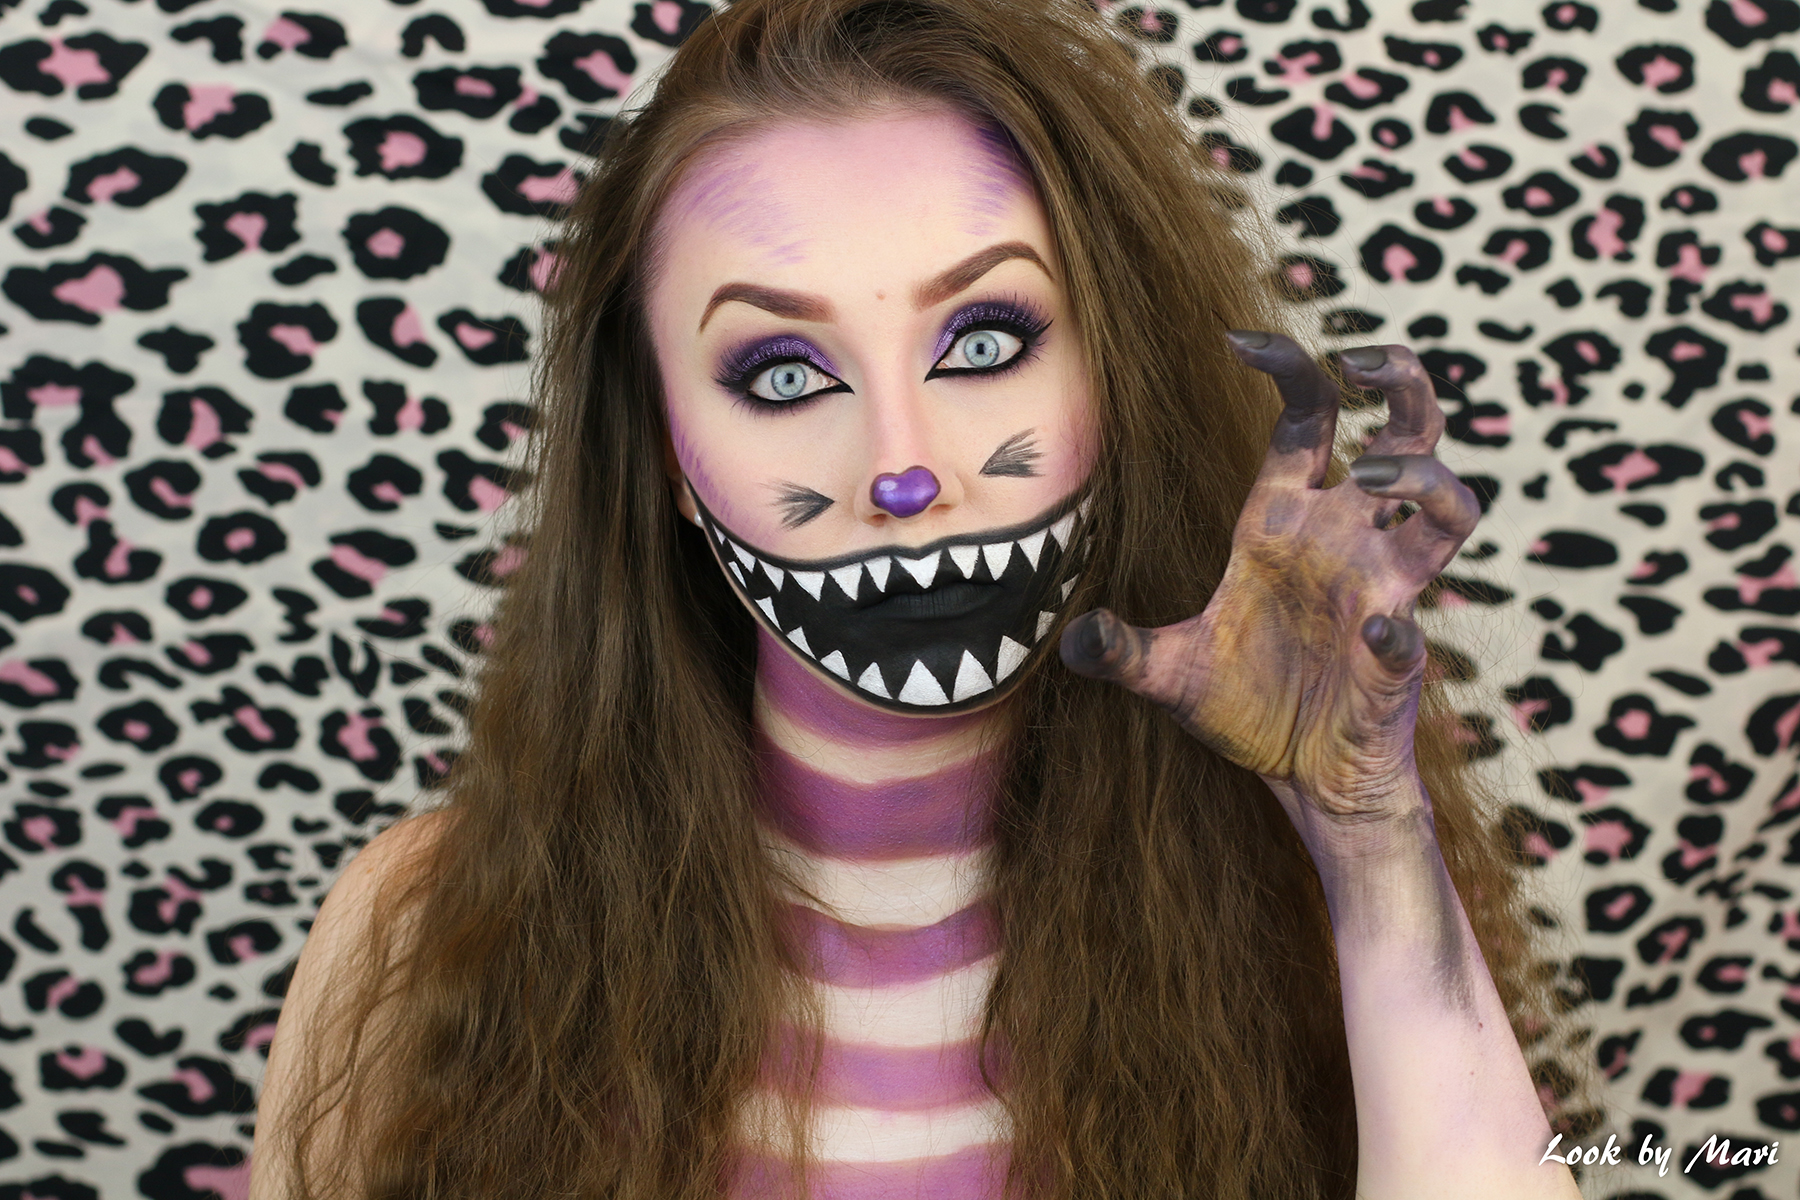 6 lisa in wonderland cat makeup costume halloween 2017 inspiration